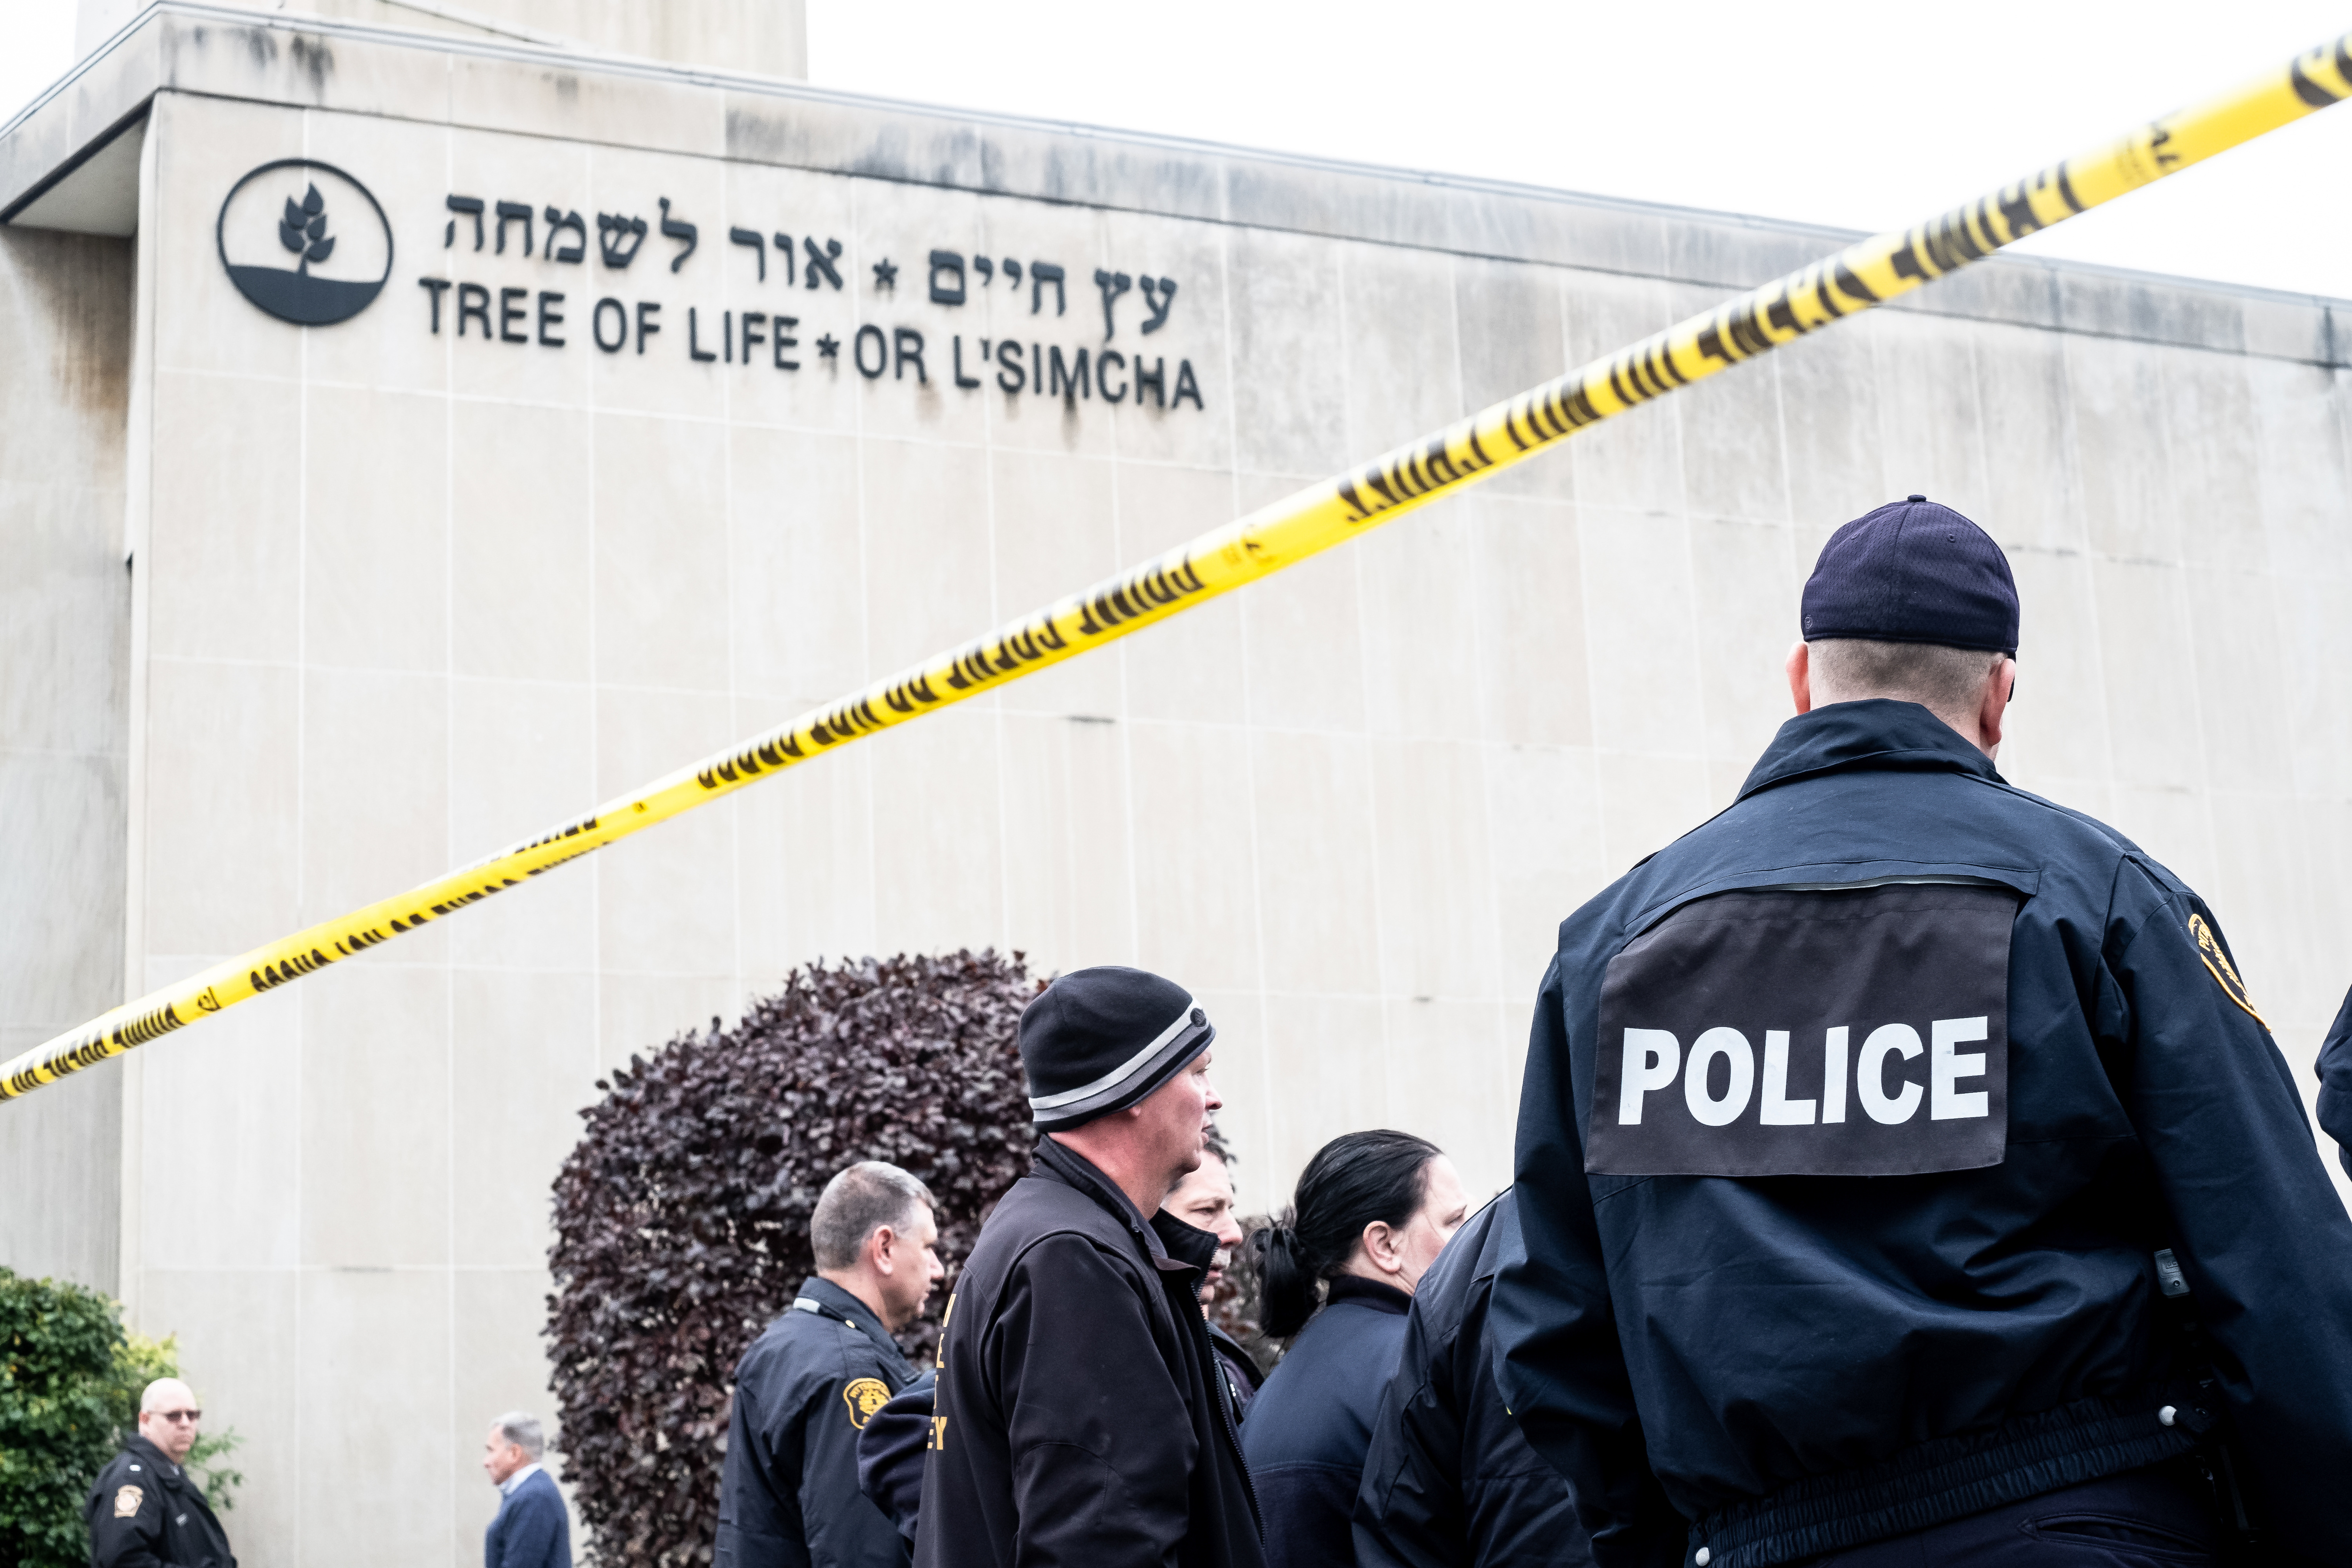 PITTSBURGH, PA, UNITED STATES - 2018/10/27: Police seen in front of synagogue.                     Aftermath of the mass shooting at the Tree of Life Synagogue in Squirrel Hill, Pittsburgh, PA.  While much tragedy struck the neighborhood, many people from the whole city physically came together and many from around the world showed their support. (Photo by